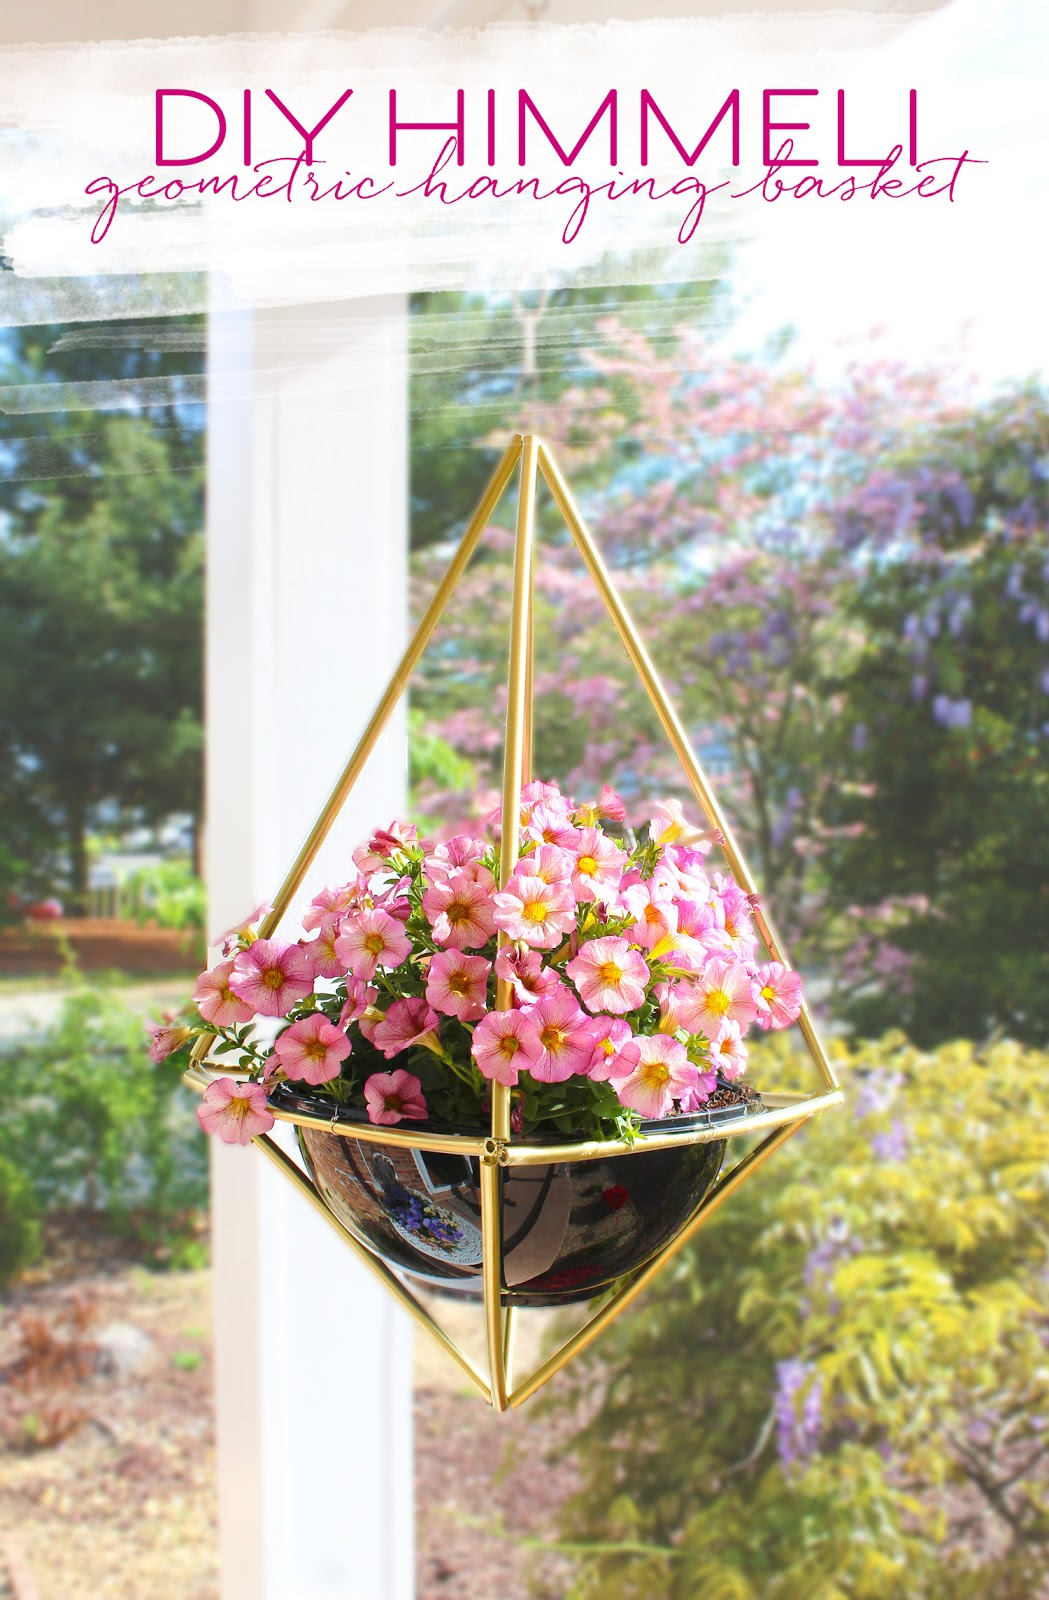 Create an outdoor hanging basket geometric himmeli planter in brass.